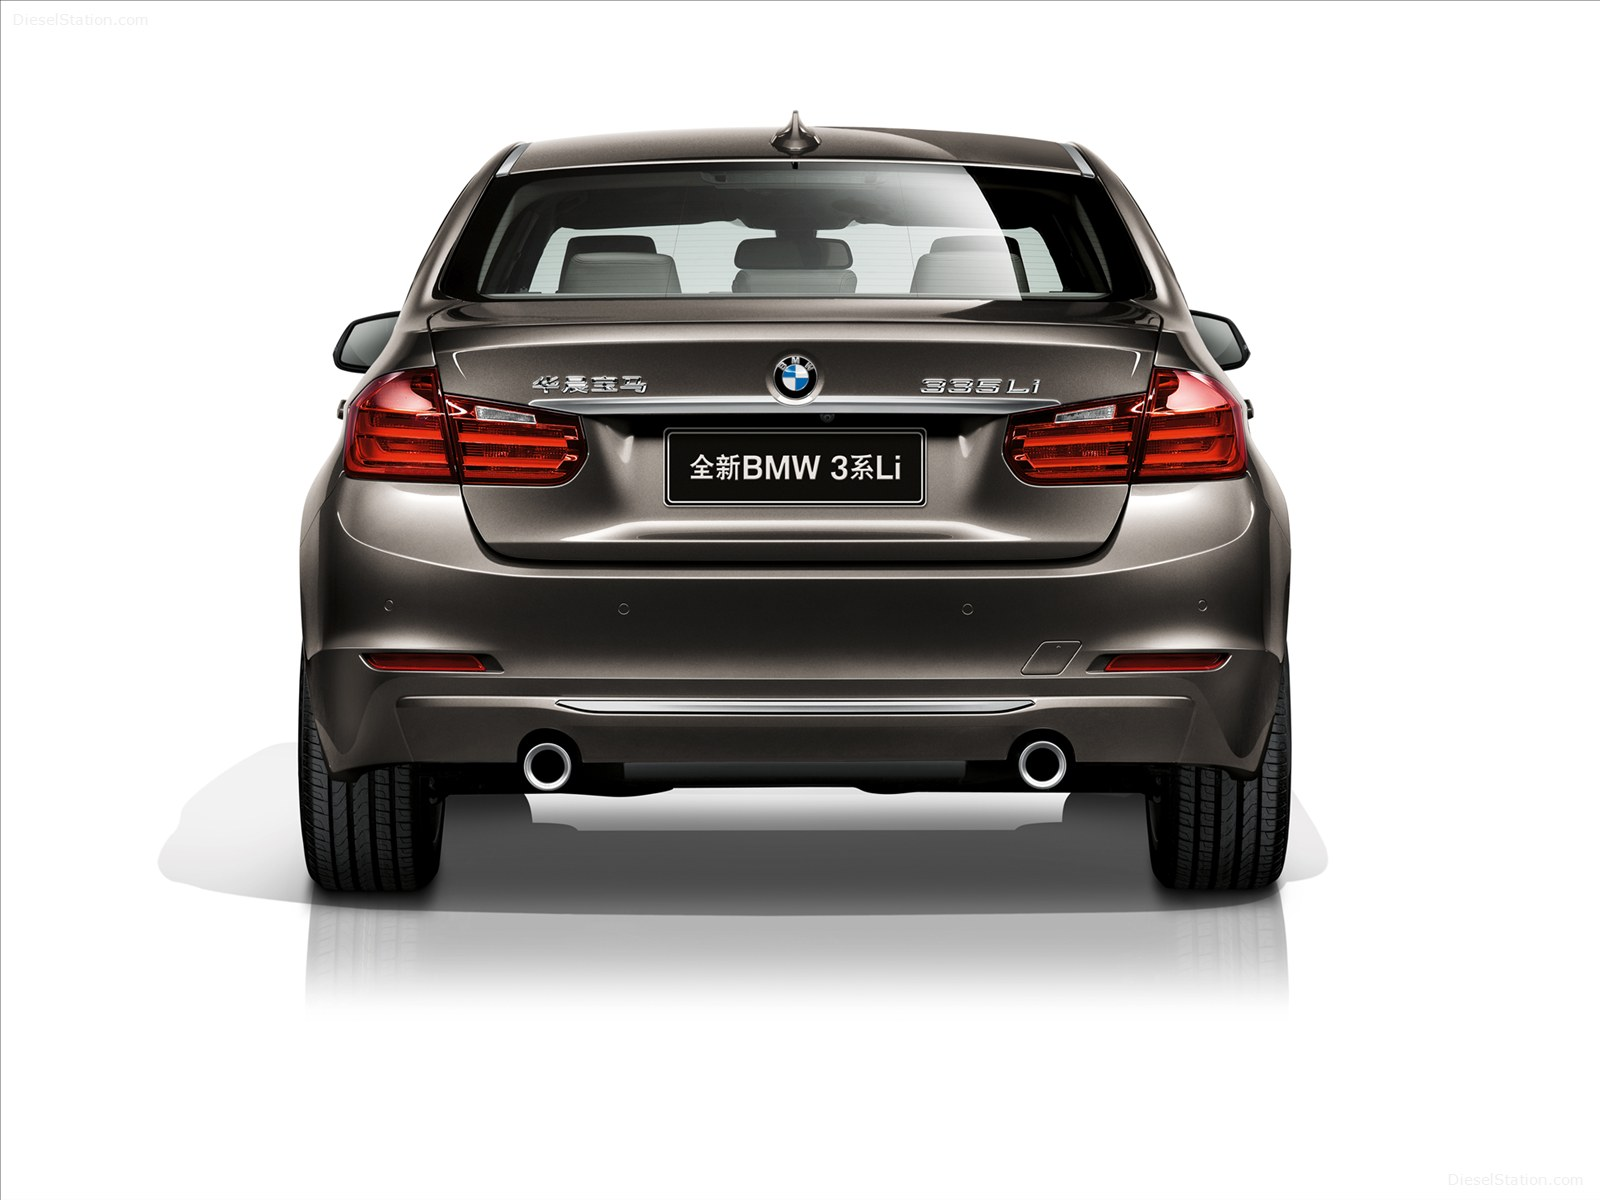 BMW3 Series latest Car Models Sedan_2012_MyClipta